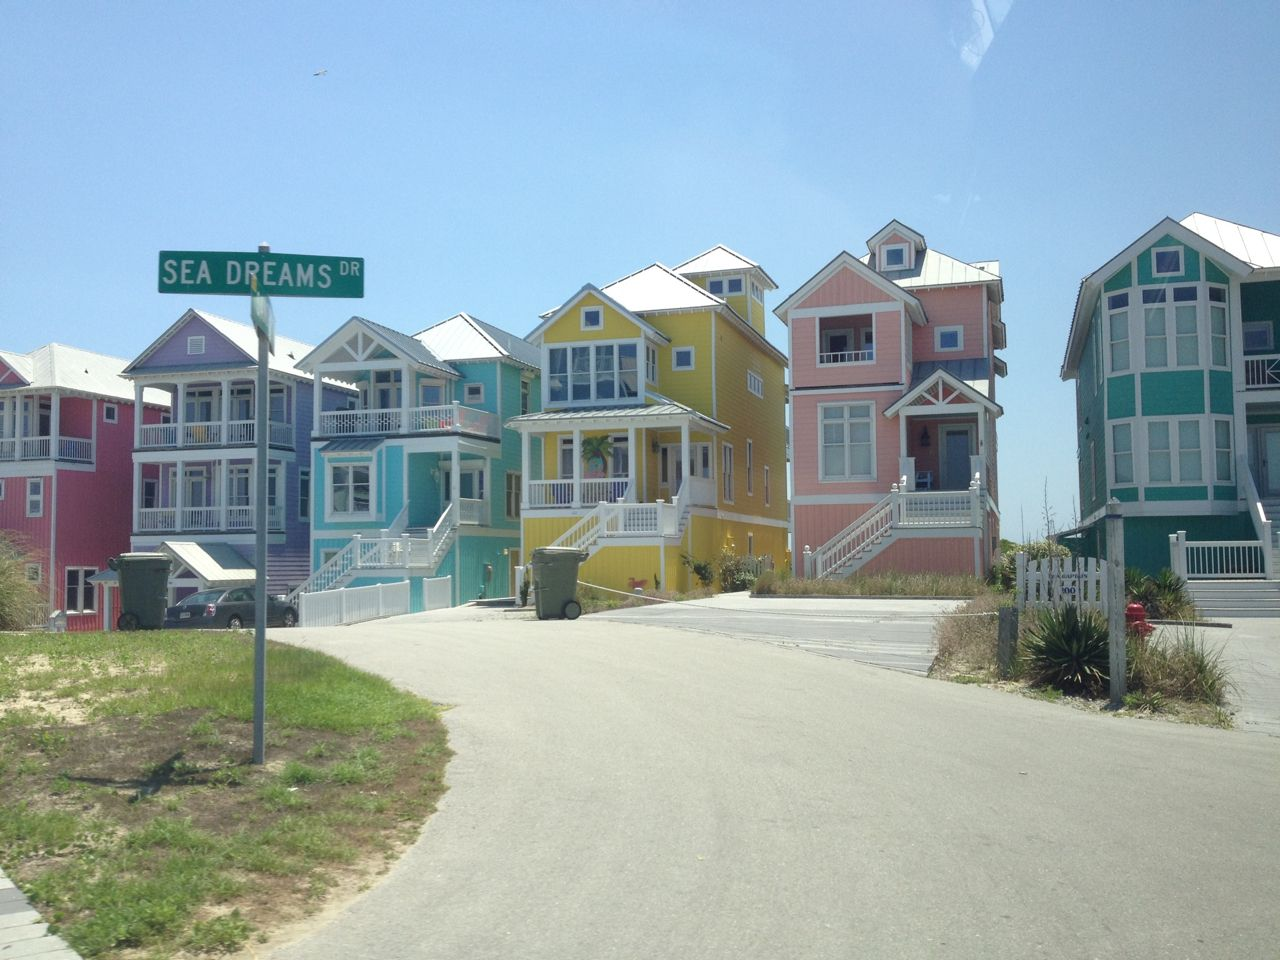 Pictures of houses on the beach - Home I Ve Seen This Picture On Social Media A Few Times And It